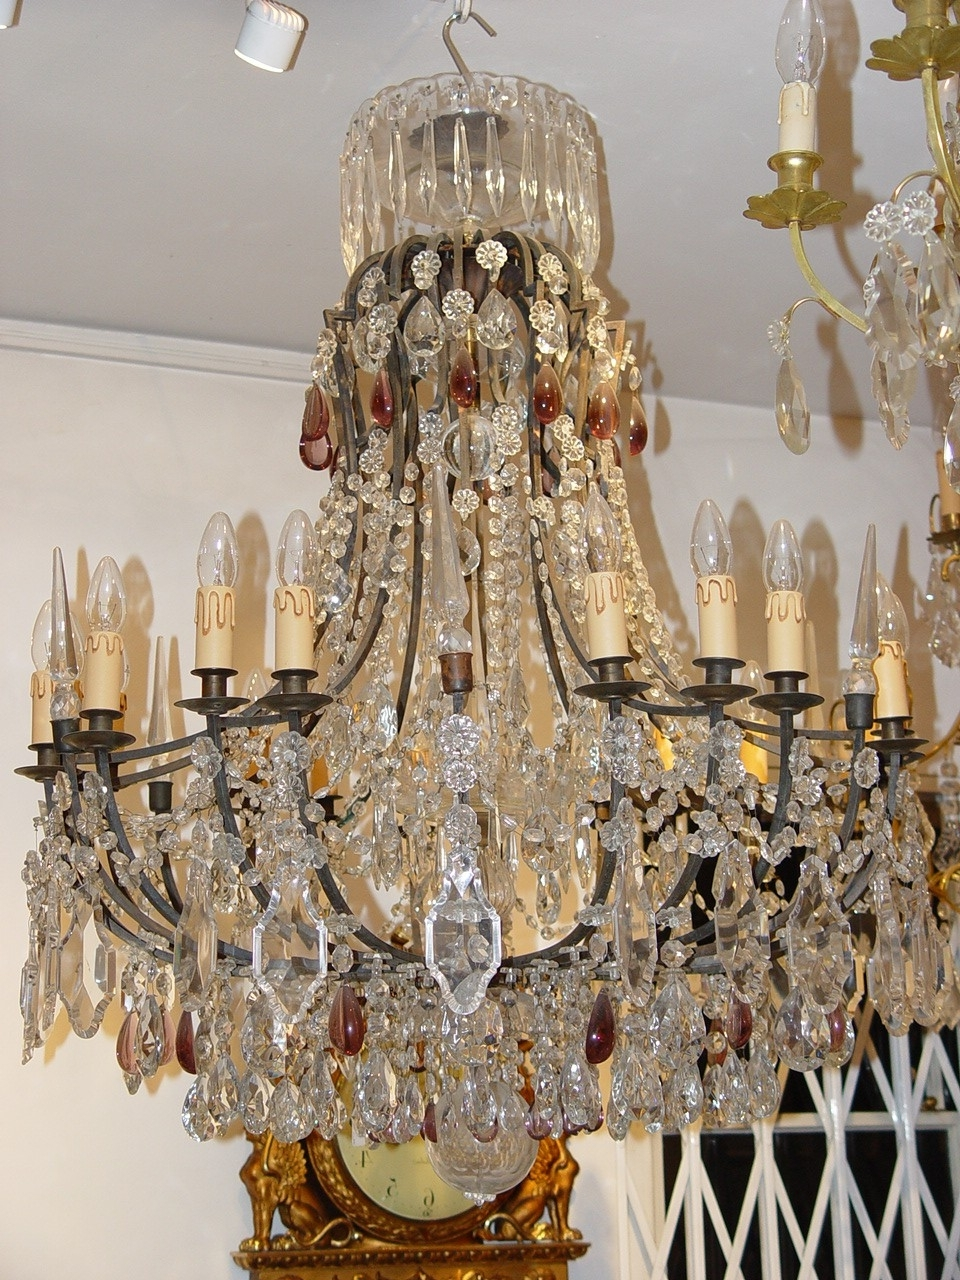 French Antique Chandelier – Chandelier Designs Intended For Well Known French Antique Chandeliers (View 19 of 20)